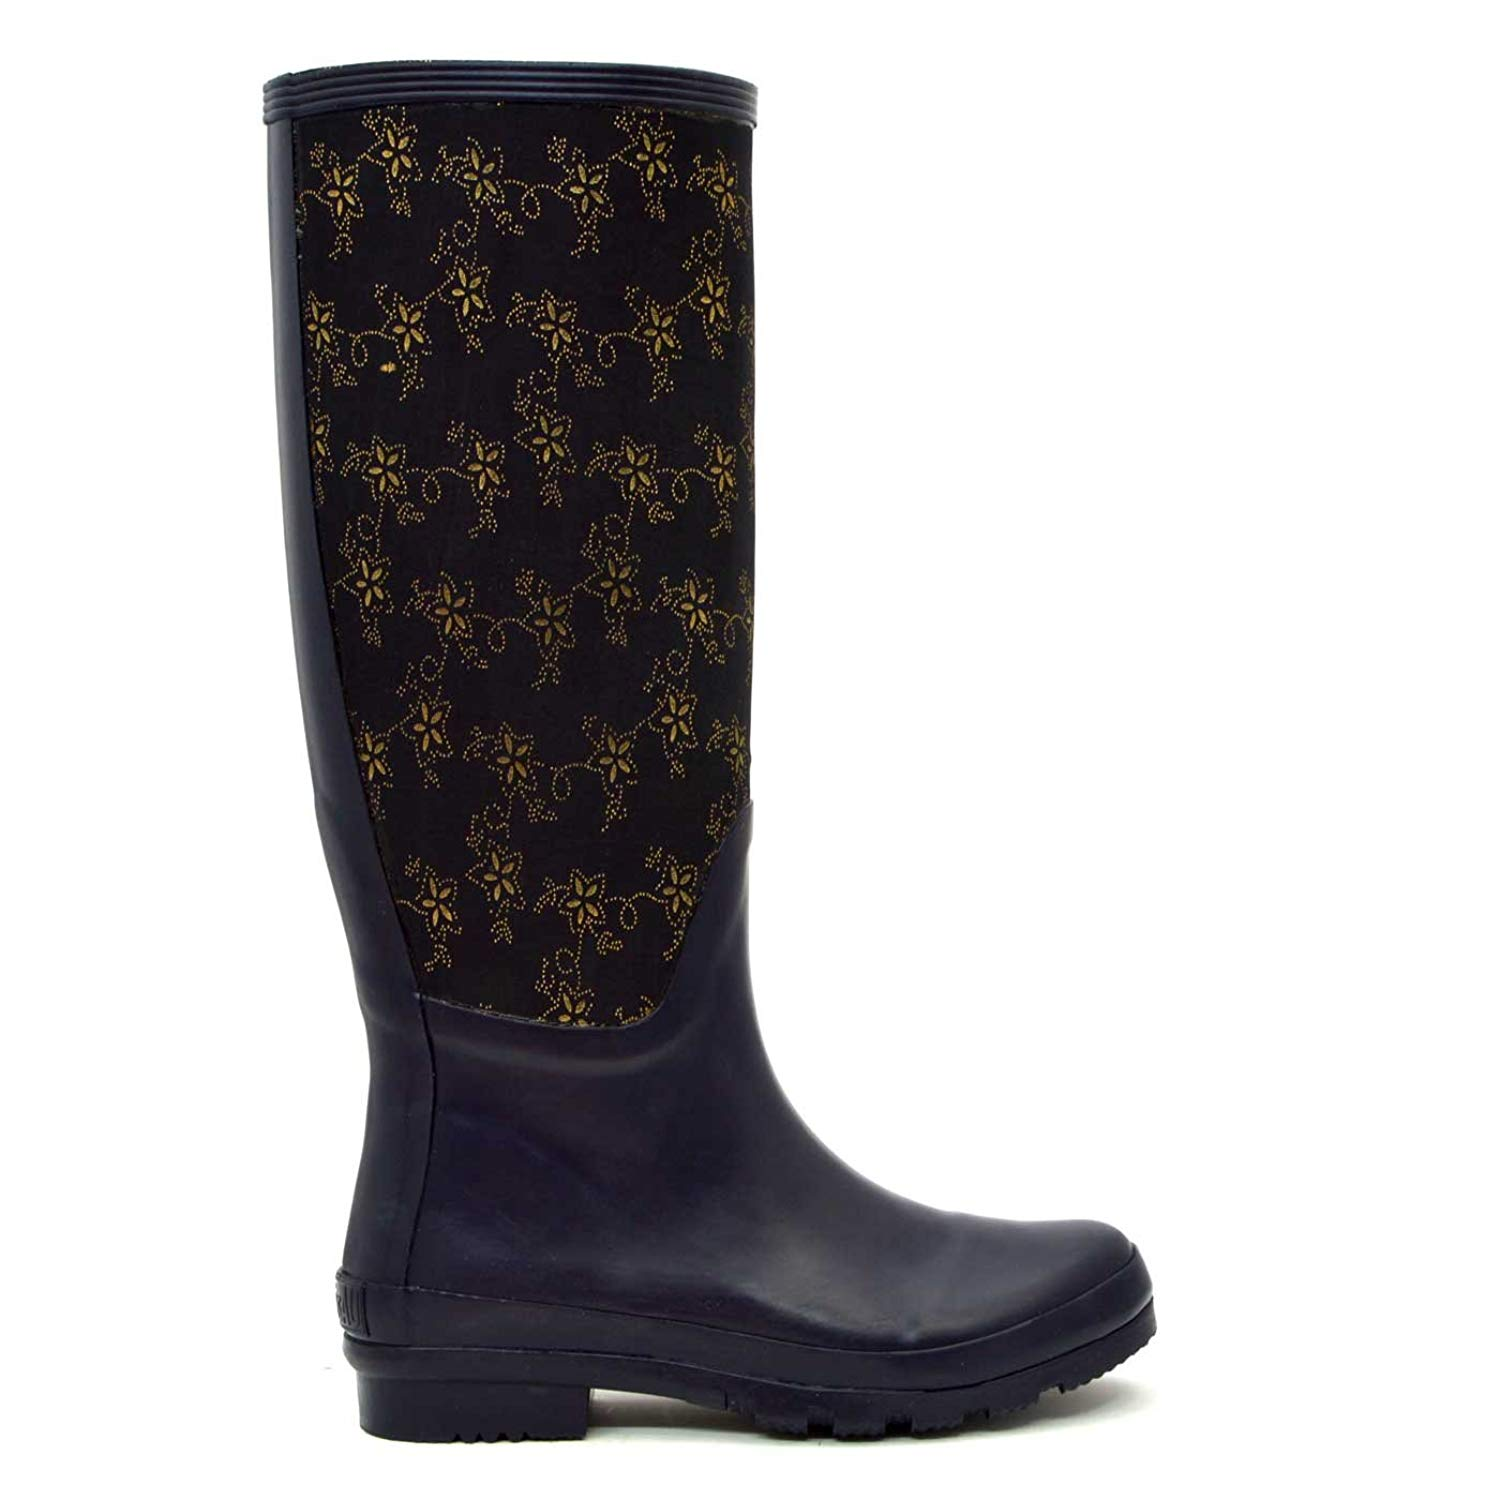 5b8e90e4ad47d Get Quotations · Navy Royale Waterproof Gumboots